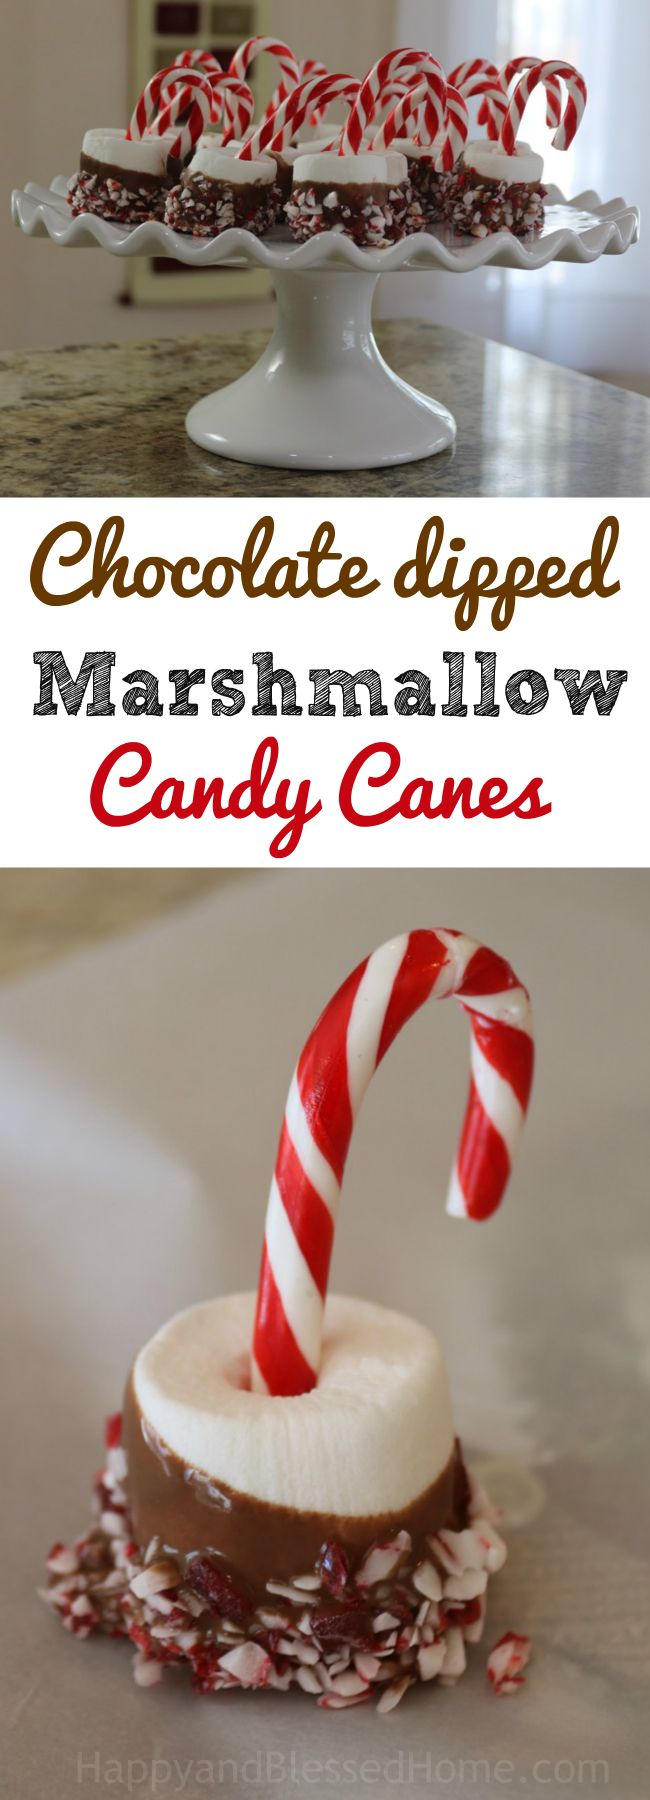 Easy recipe for Chocolate dipped Marshmallow Candy Canes - the perfect treat for a holiday or Christmas party. Perfect for kids and adults, they're little mini desserts that combine two of my favorite flavors - chocolate and peppermint. Spread a little holiday CHEER!